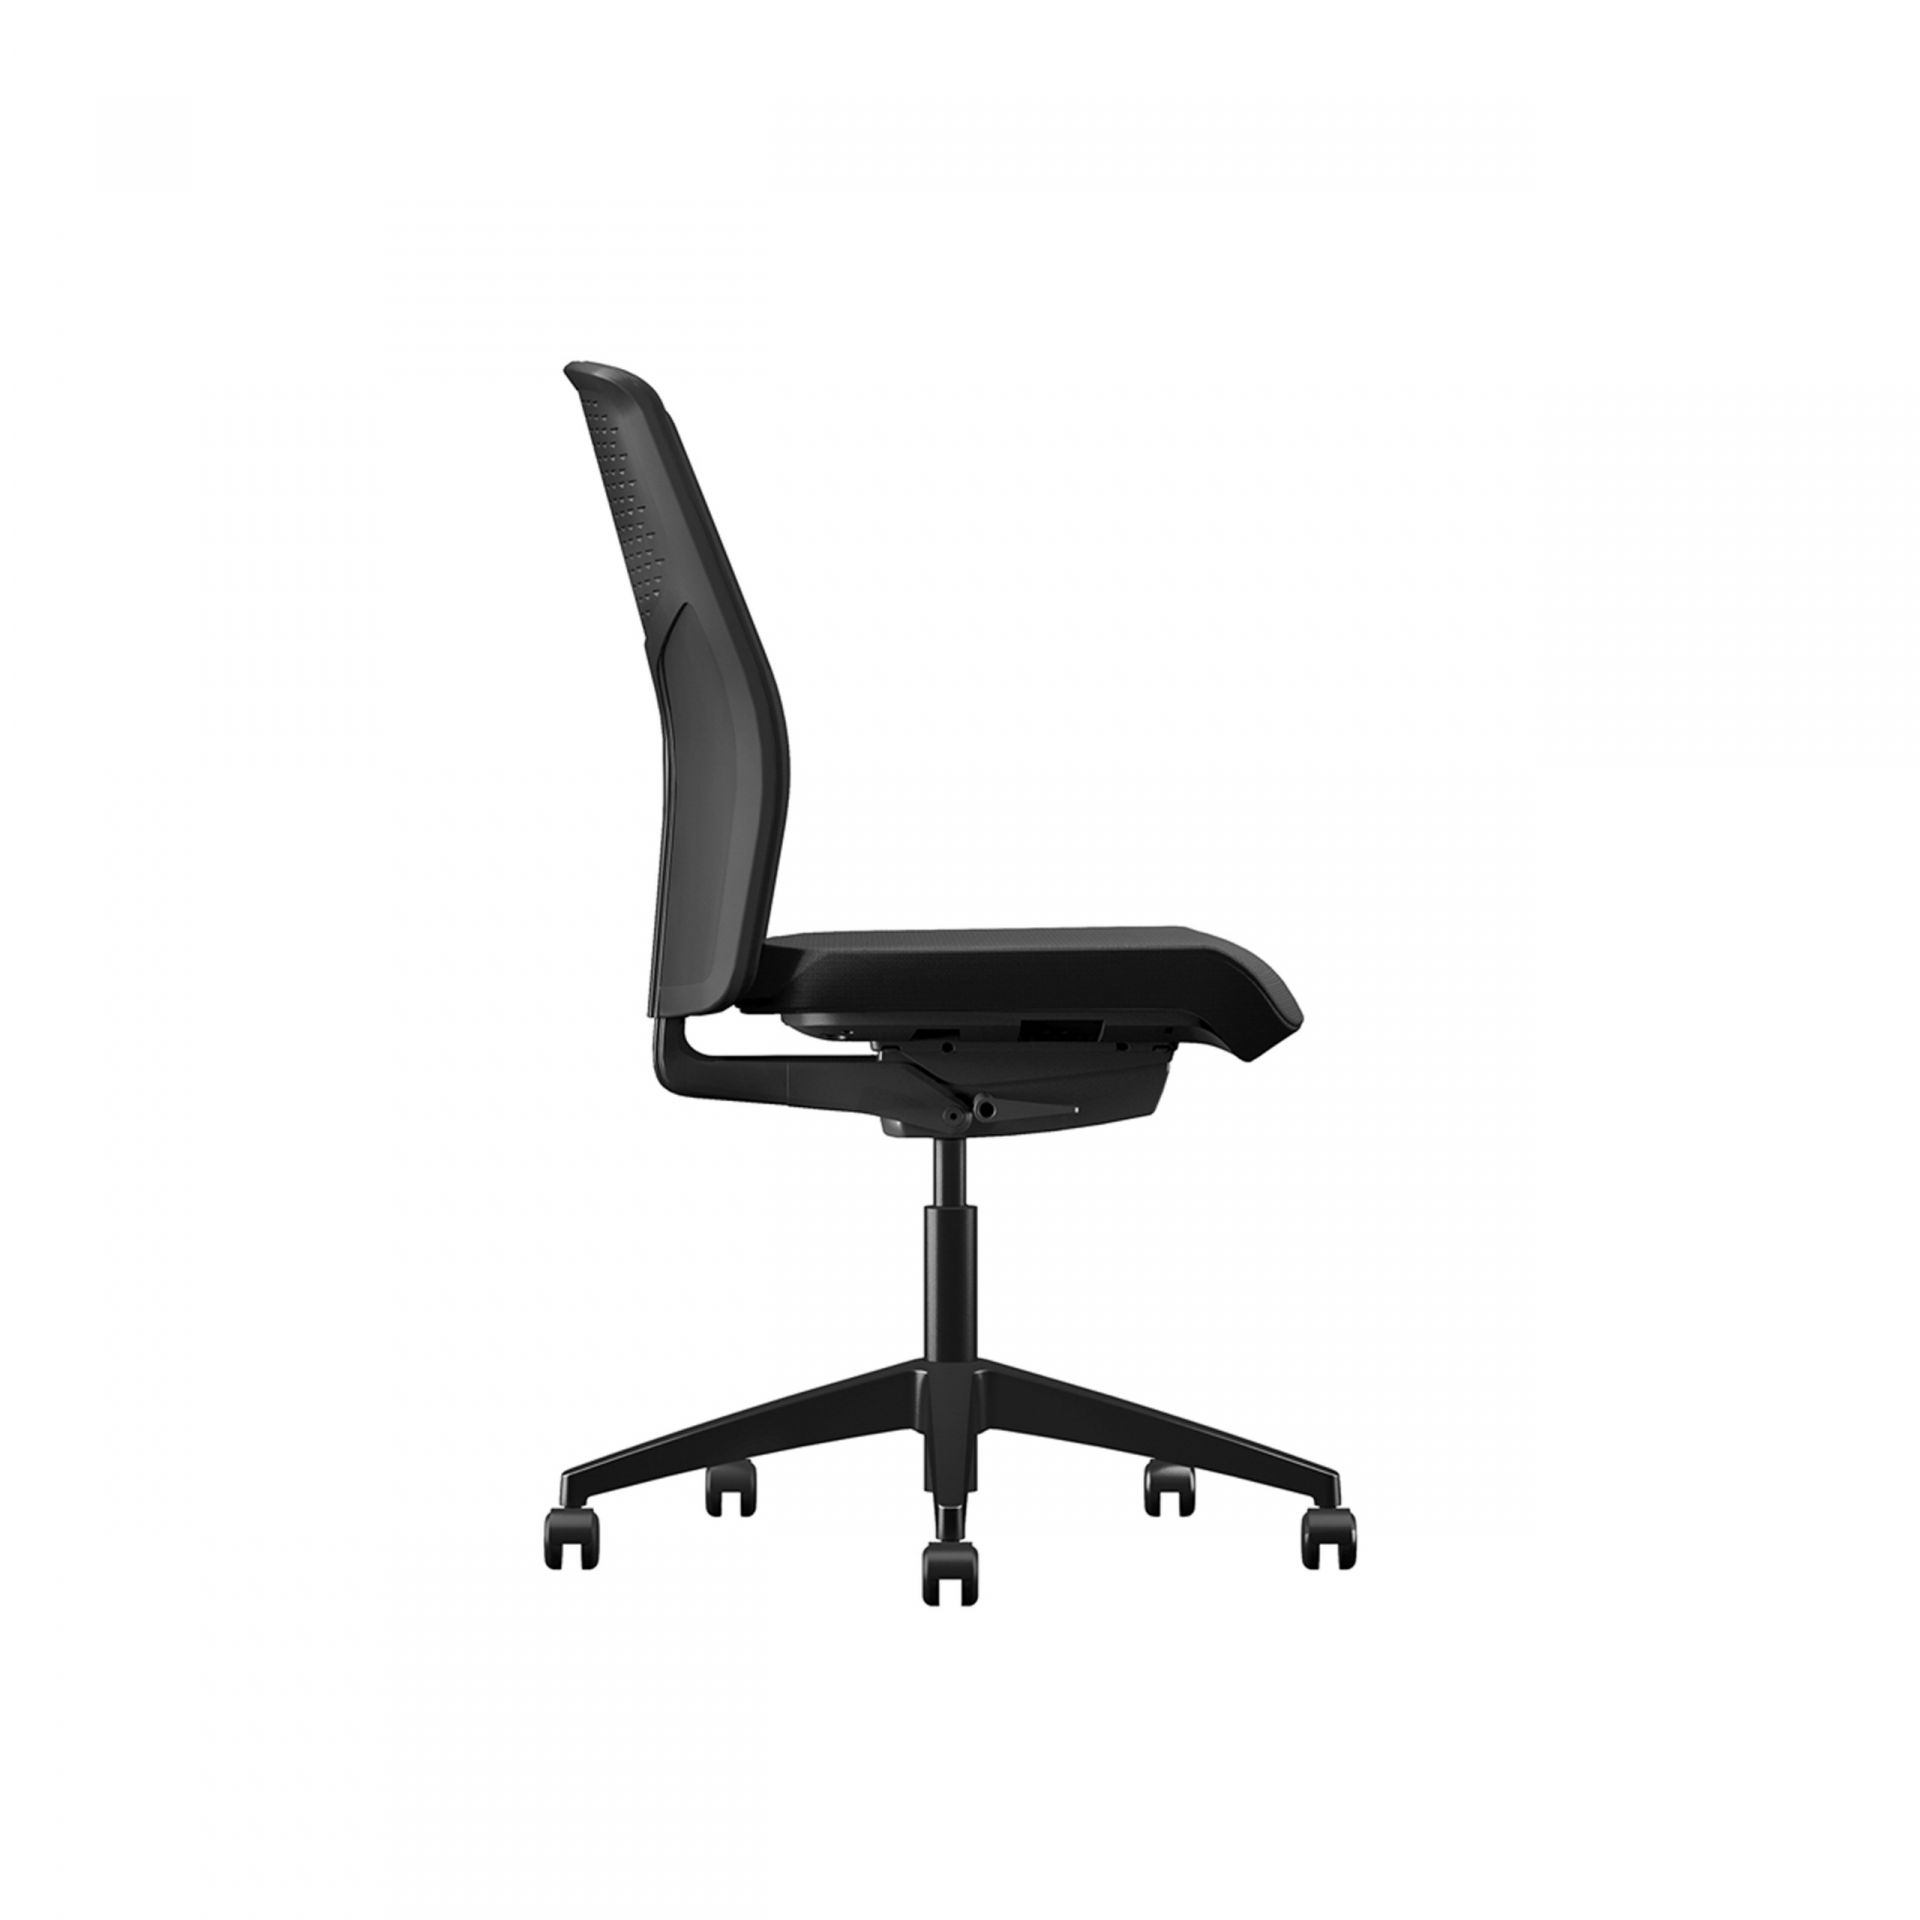 Yoyo Office chair with covered mesh back product image 3